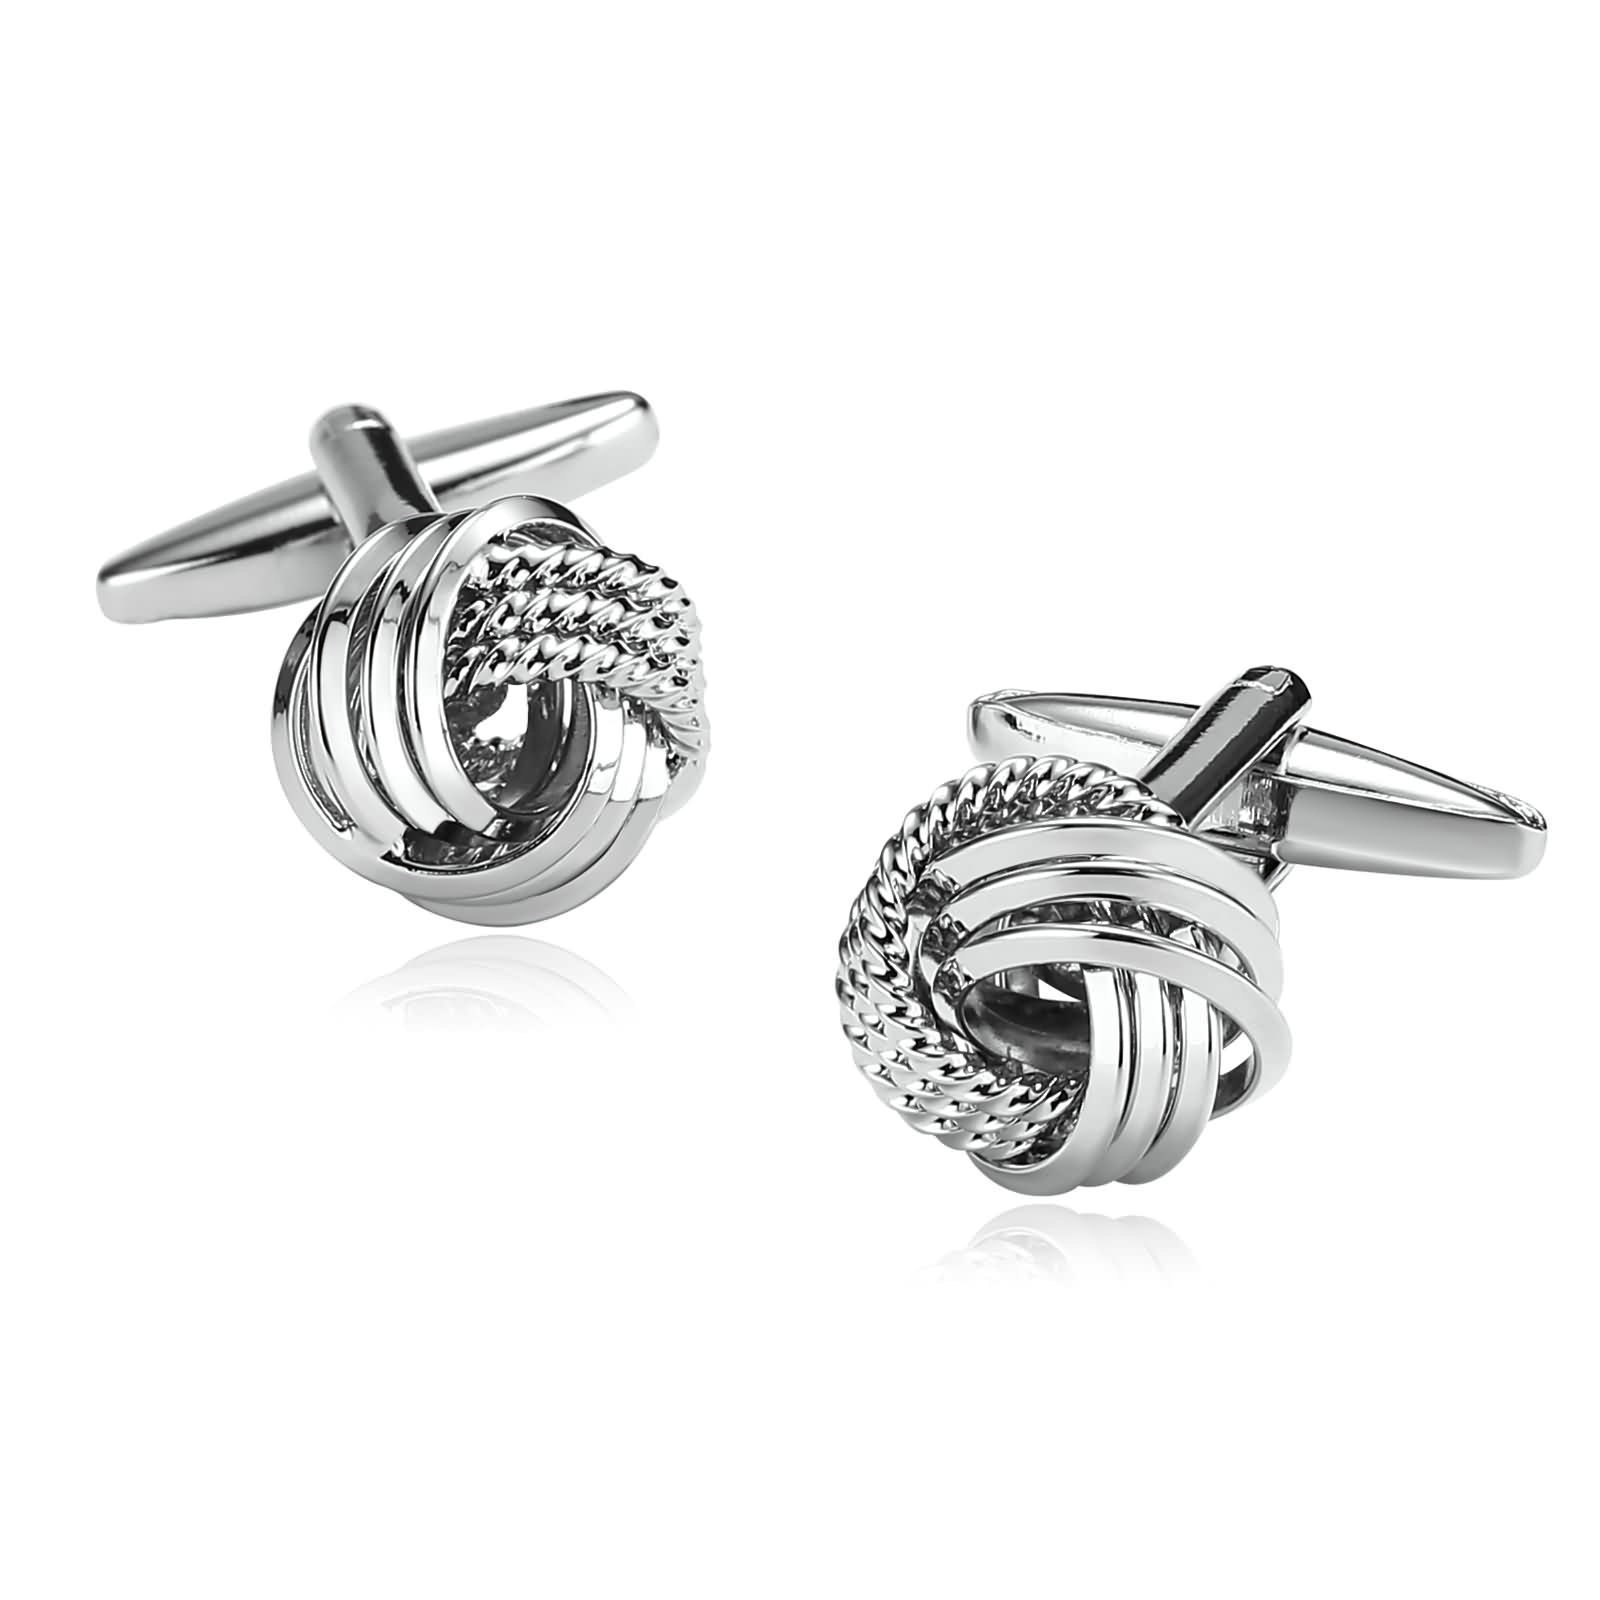 Aokarry Cufflinks-Men's Stainless Steel Rope Love Knot Cuff Links Silver